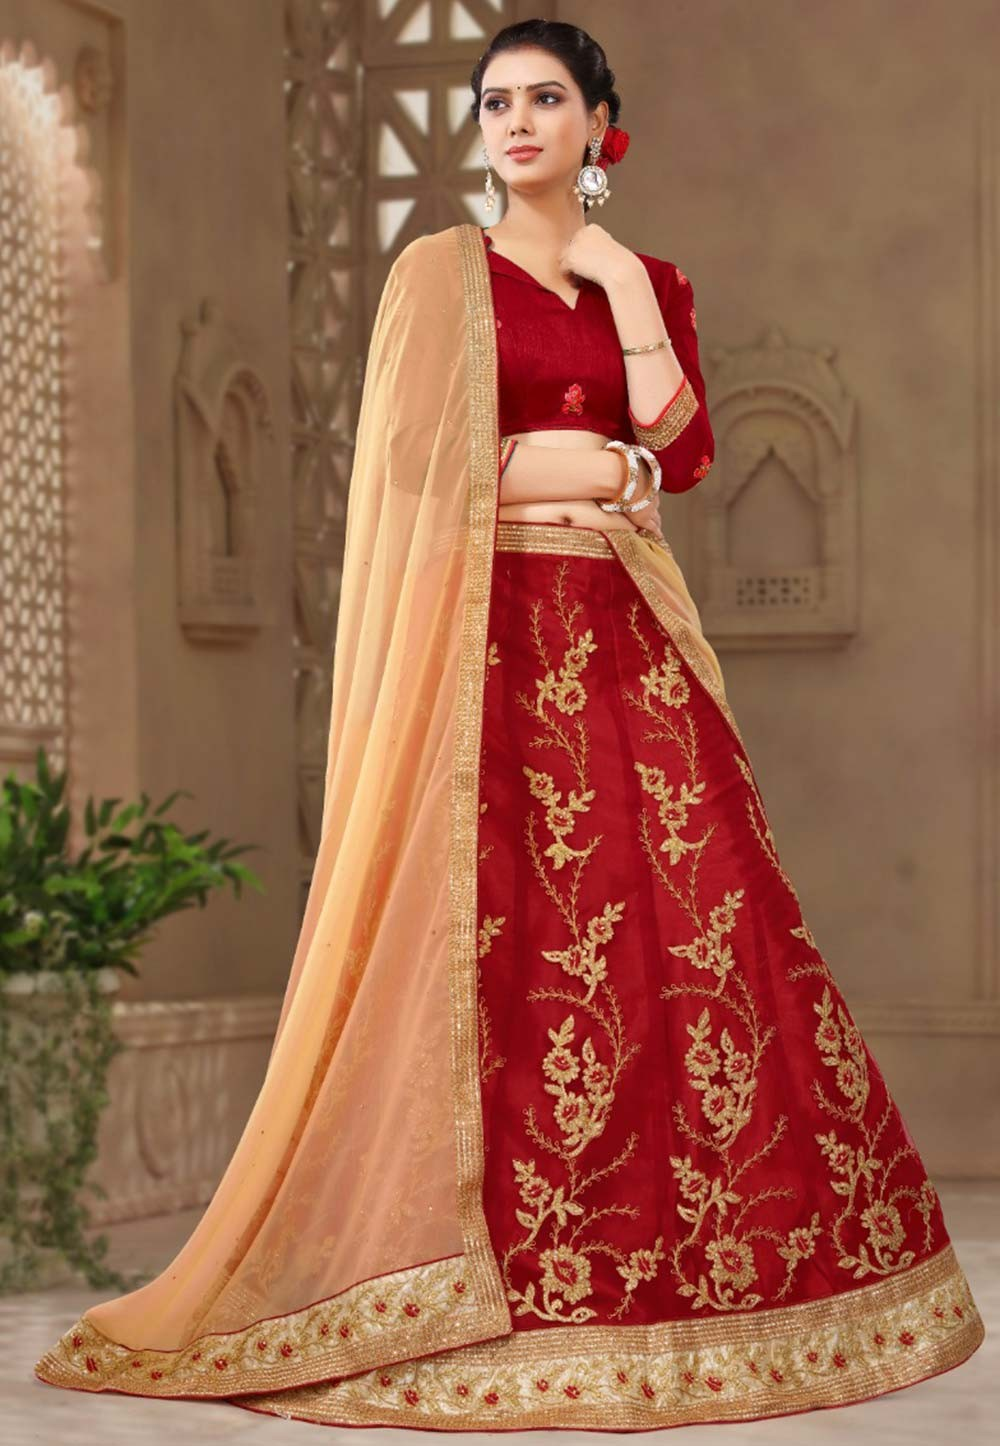 Maroon Colour Lehenga choli for bridesmaid